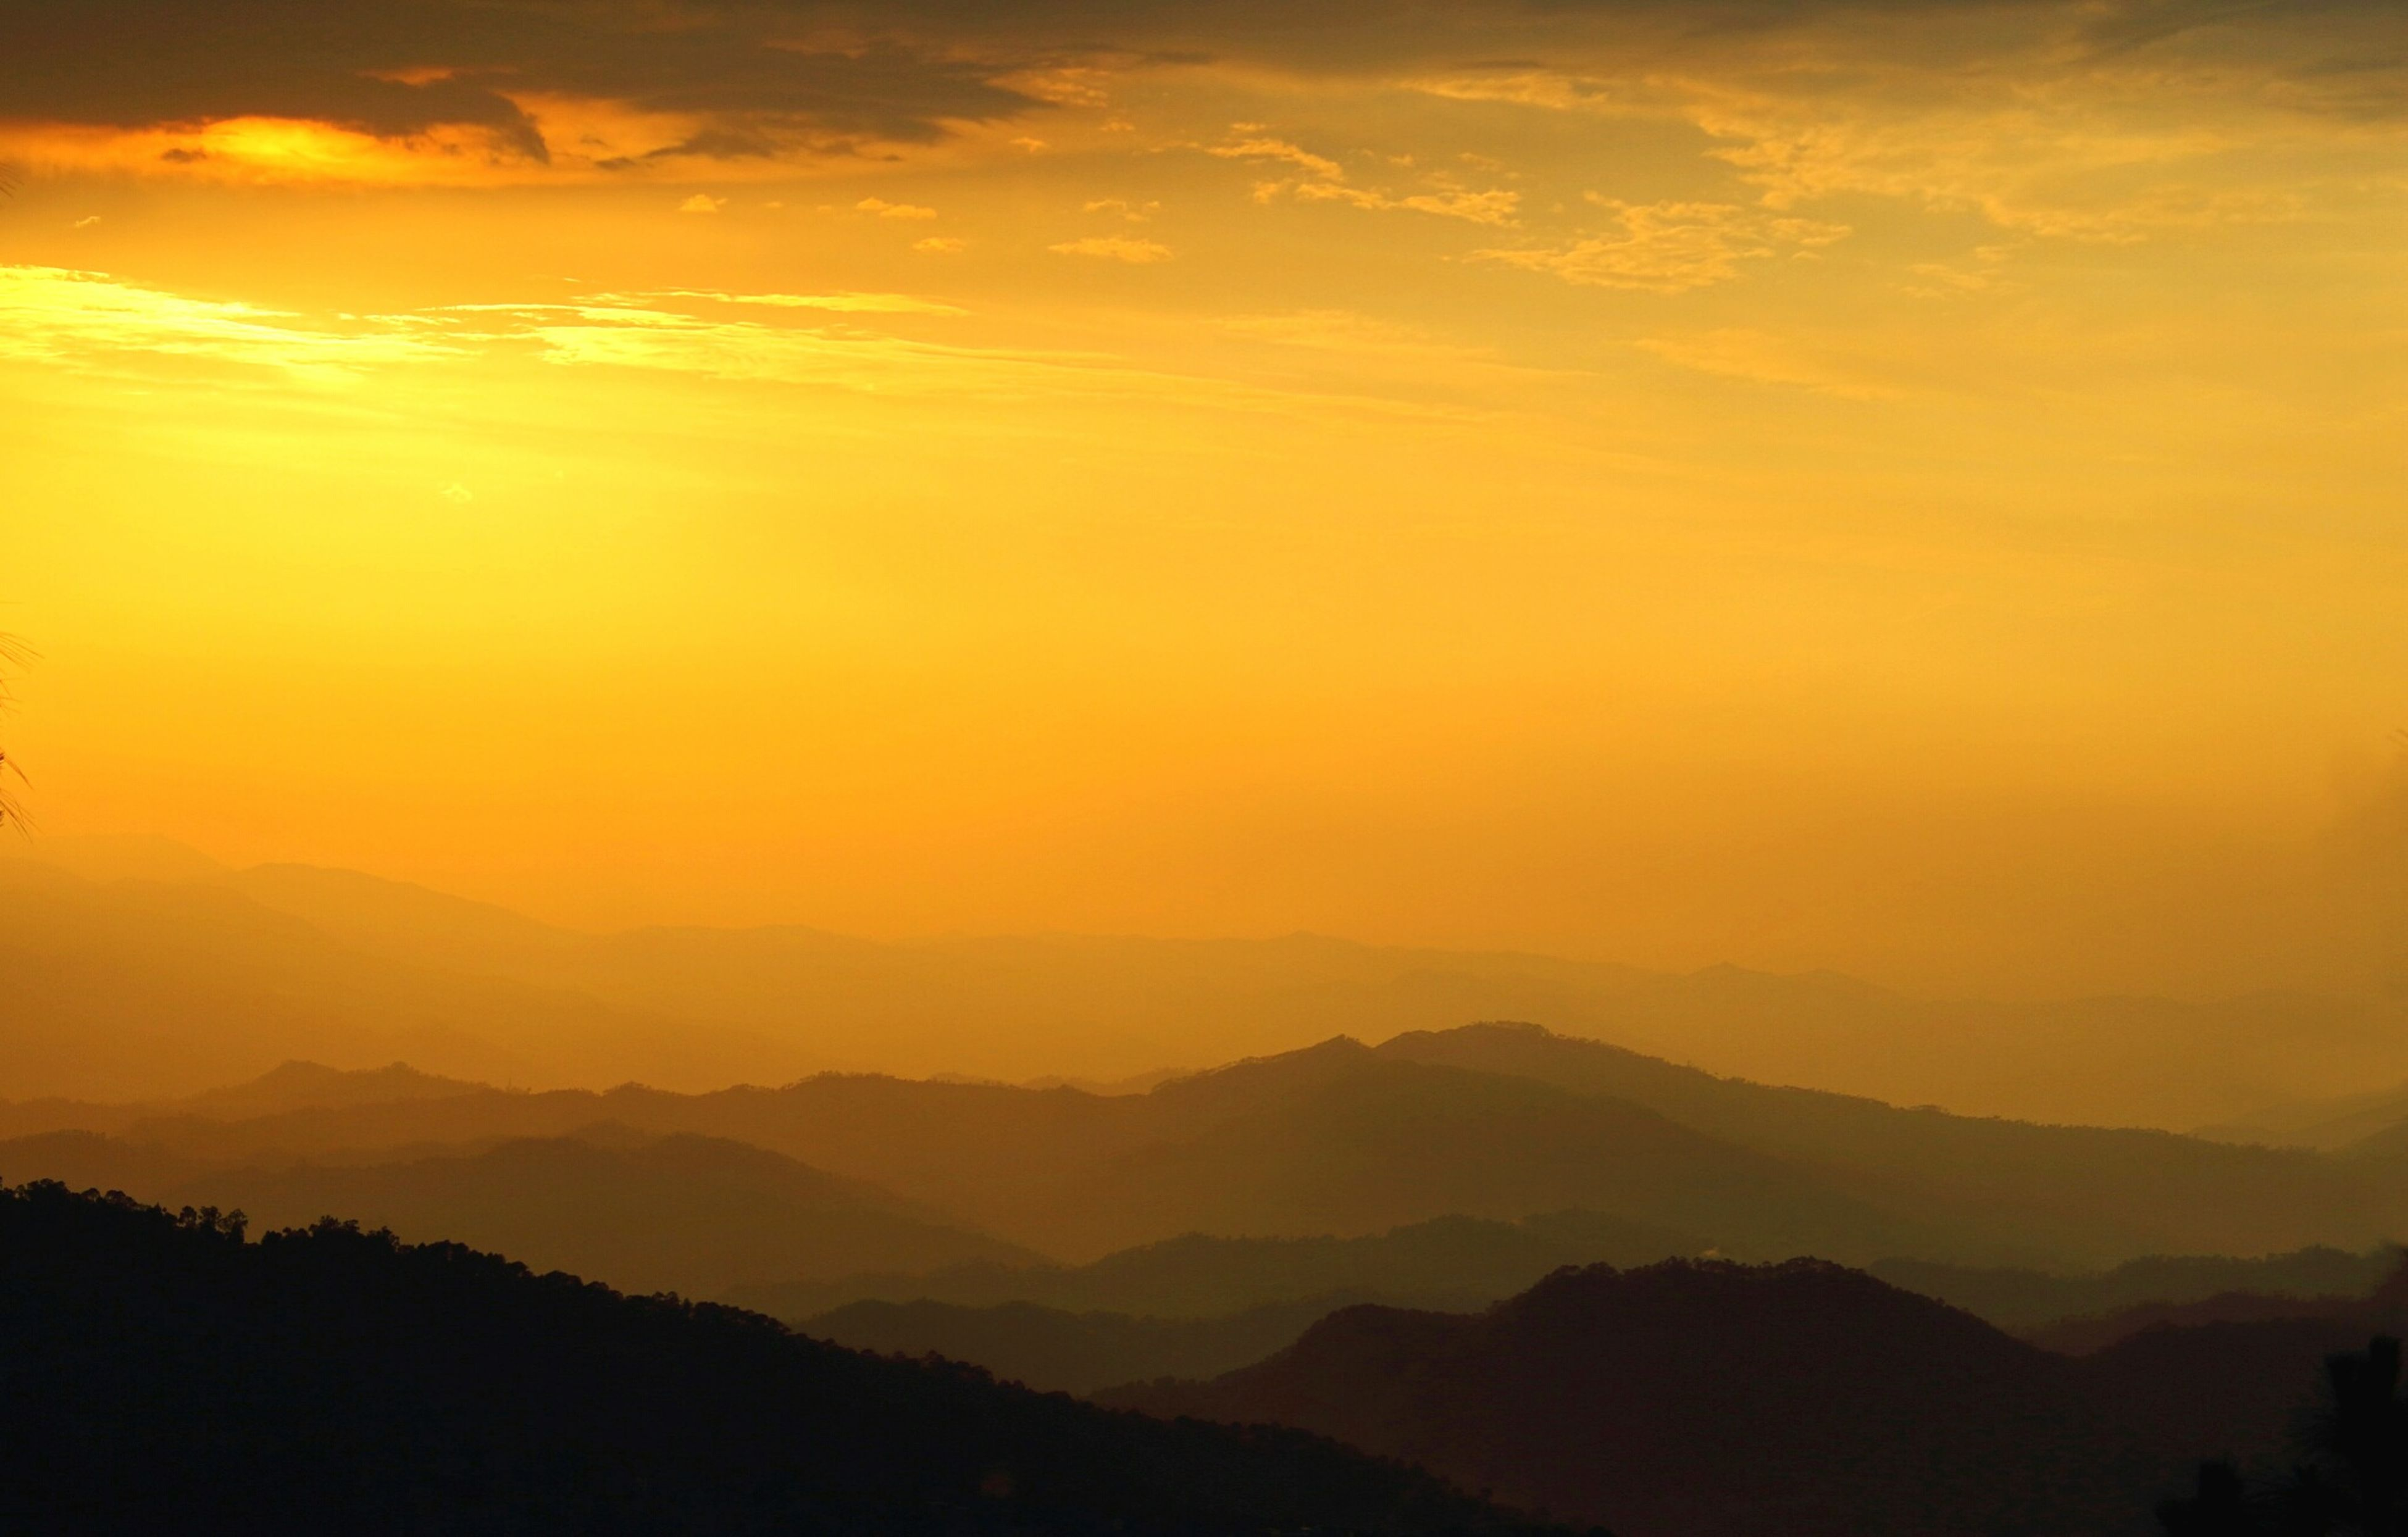 sunset, nature, silhouette, orange color, beauty in nature, tranquil scene, scenics, sky, mountain, tranquility, outdoors, no people, tree, landscape, mountain range, day